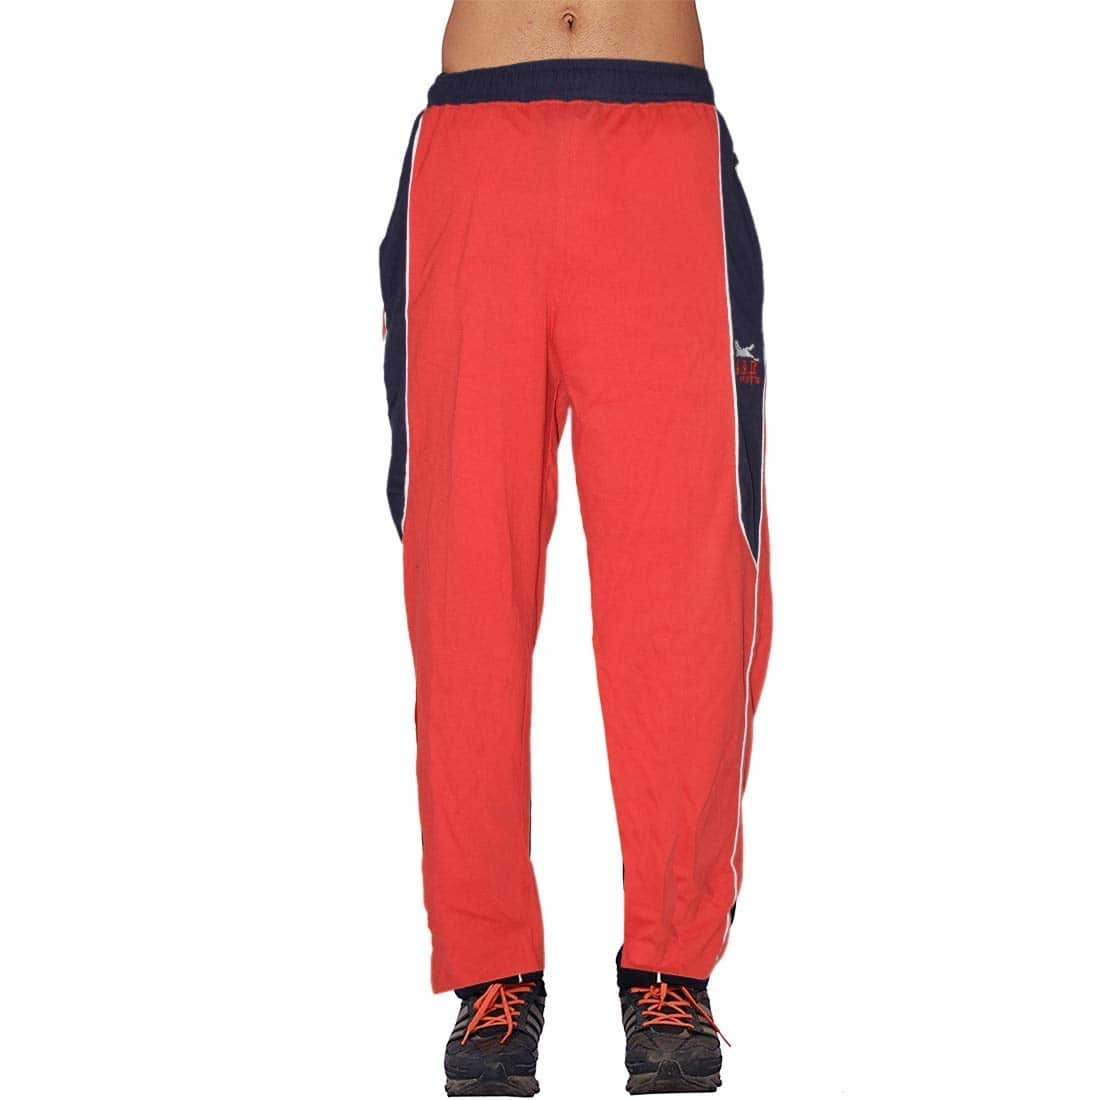 SSR Track Pants for Men - Red  Material: Hoisery fabric, Waist style: Elastic waistband two side-seam pockets Perfect for sports, gym, running. No fly Pull-on design, two pockets on side  Buy Now :- https://amzn.to/2FtiV4j   #paints #stlylish #cotton #menspaint #comfortable #cottonpaints #stylishpaint #printeddesign